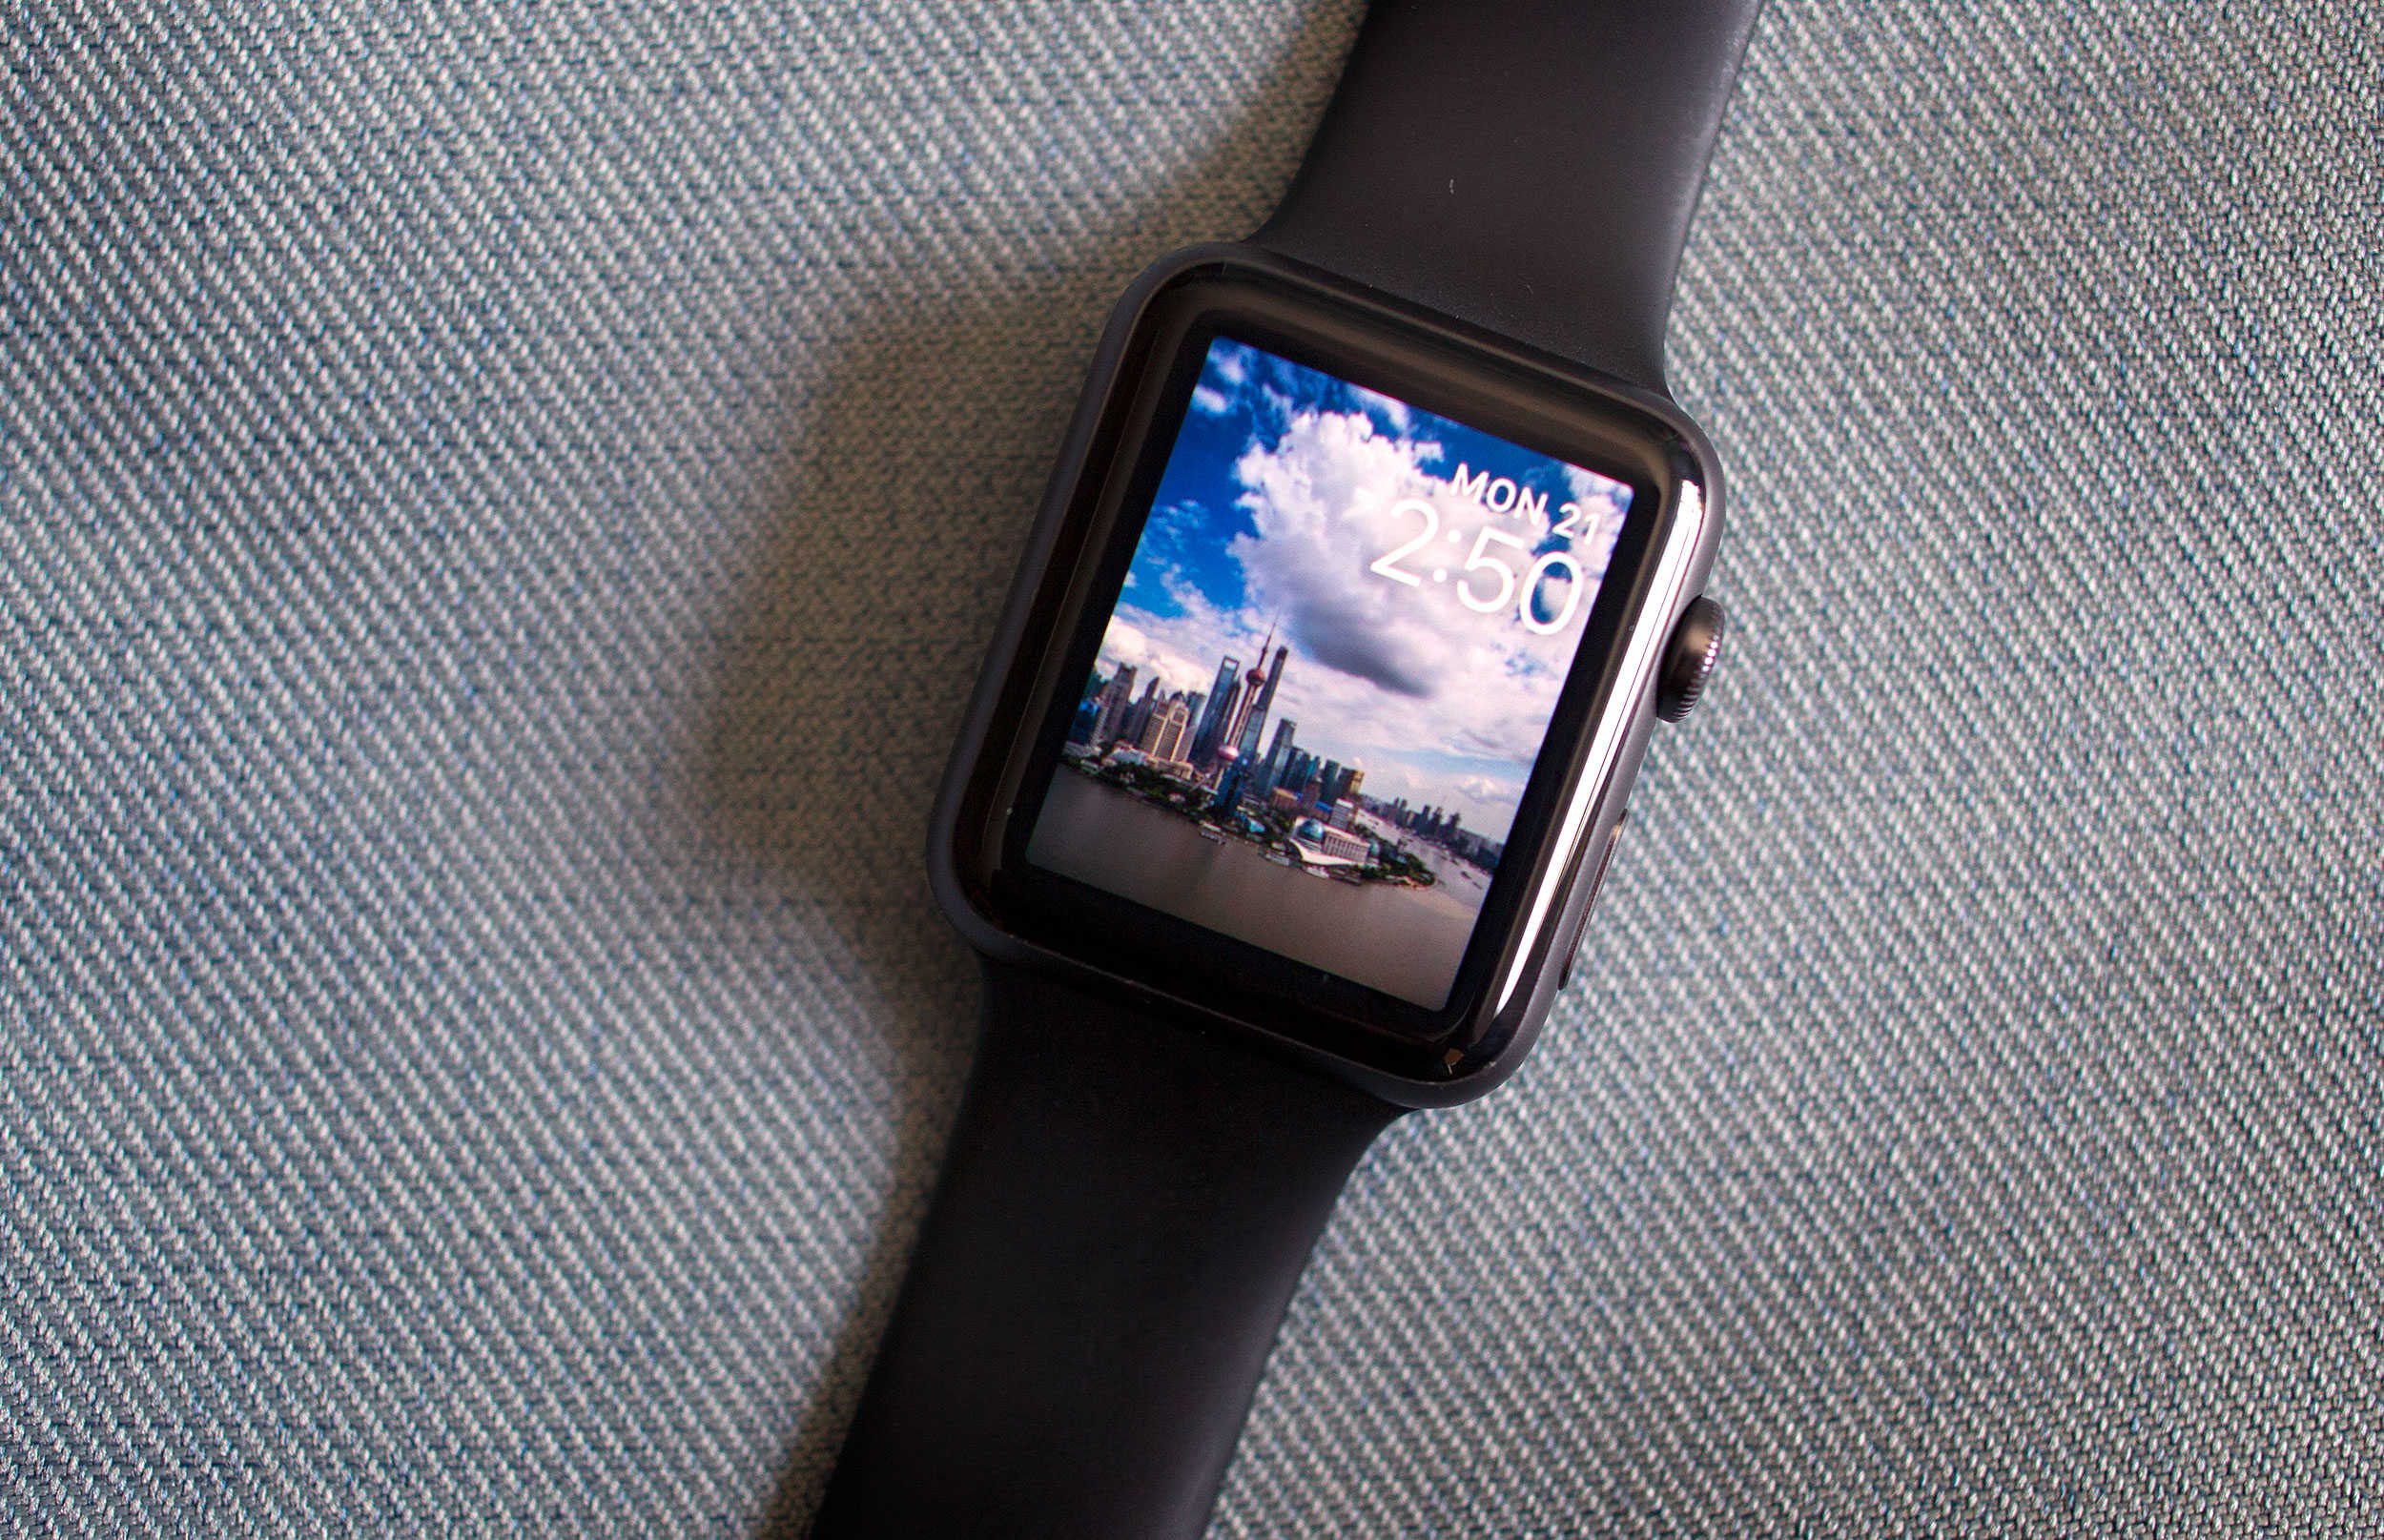 Apple Watch is a killer device, even without a